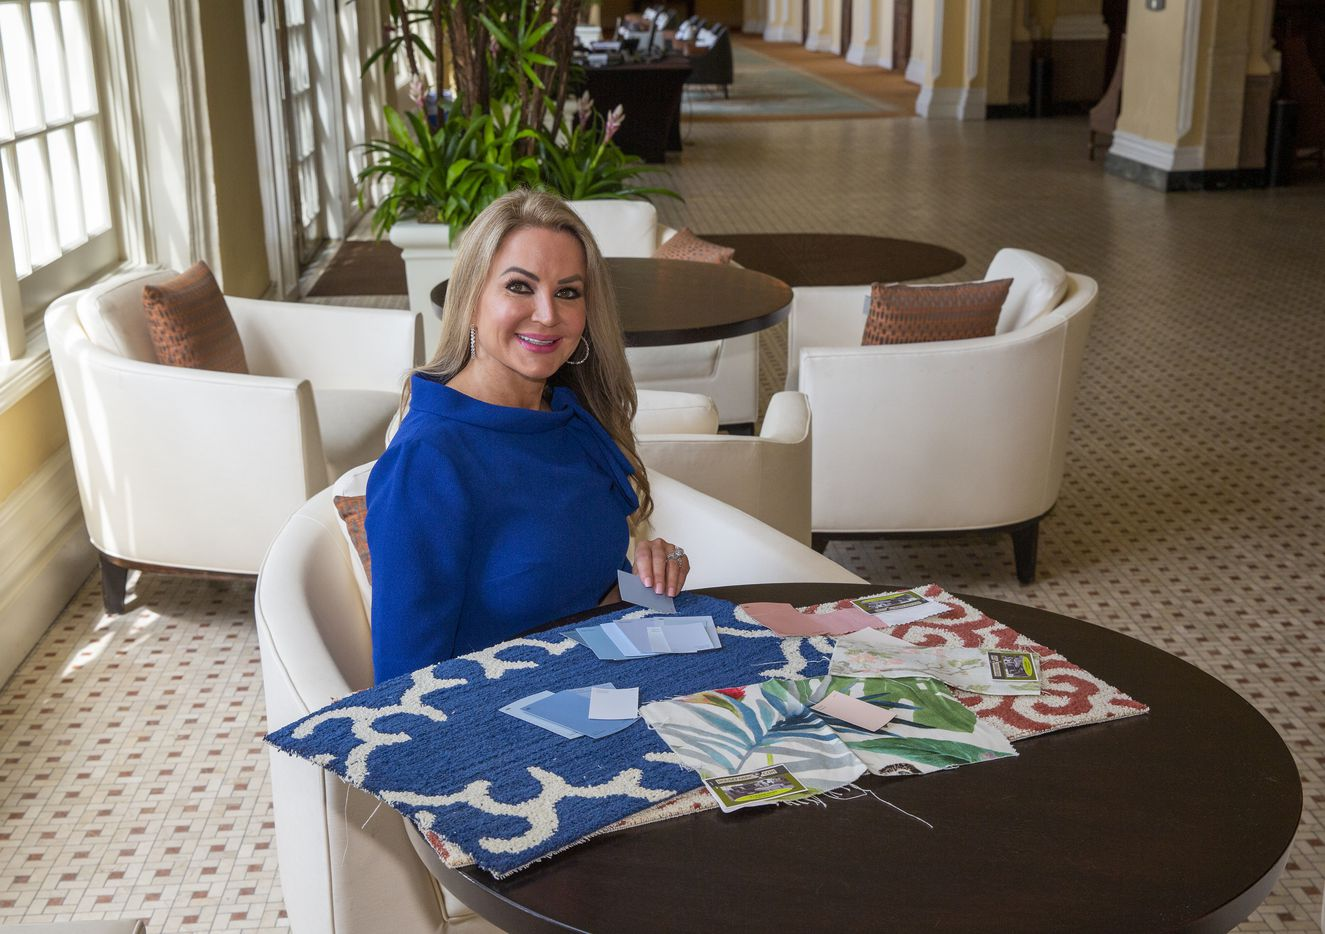 Wyant's wife, Lorenda, is overseeing the hotel's new interior design